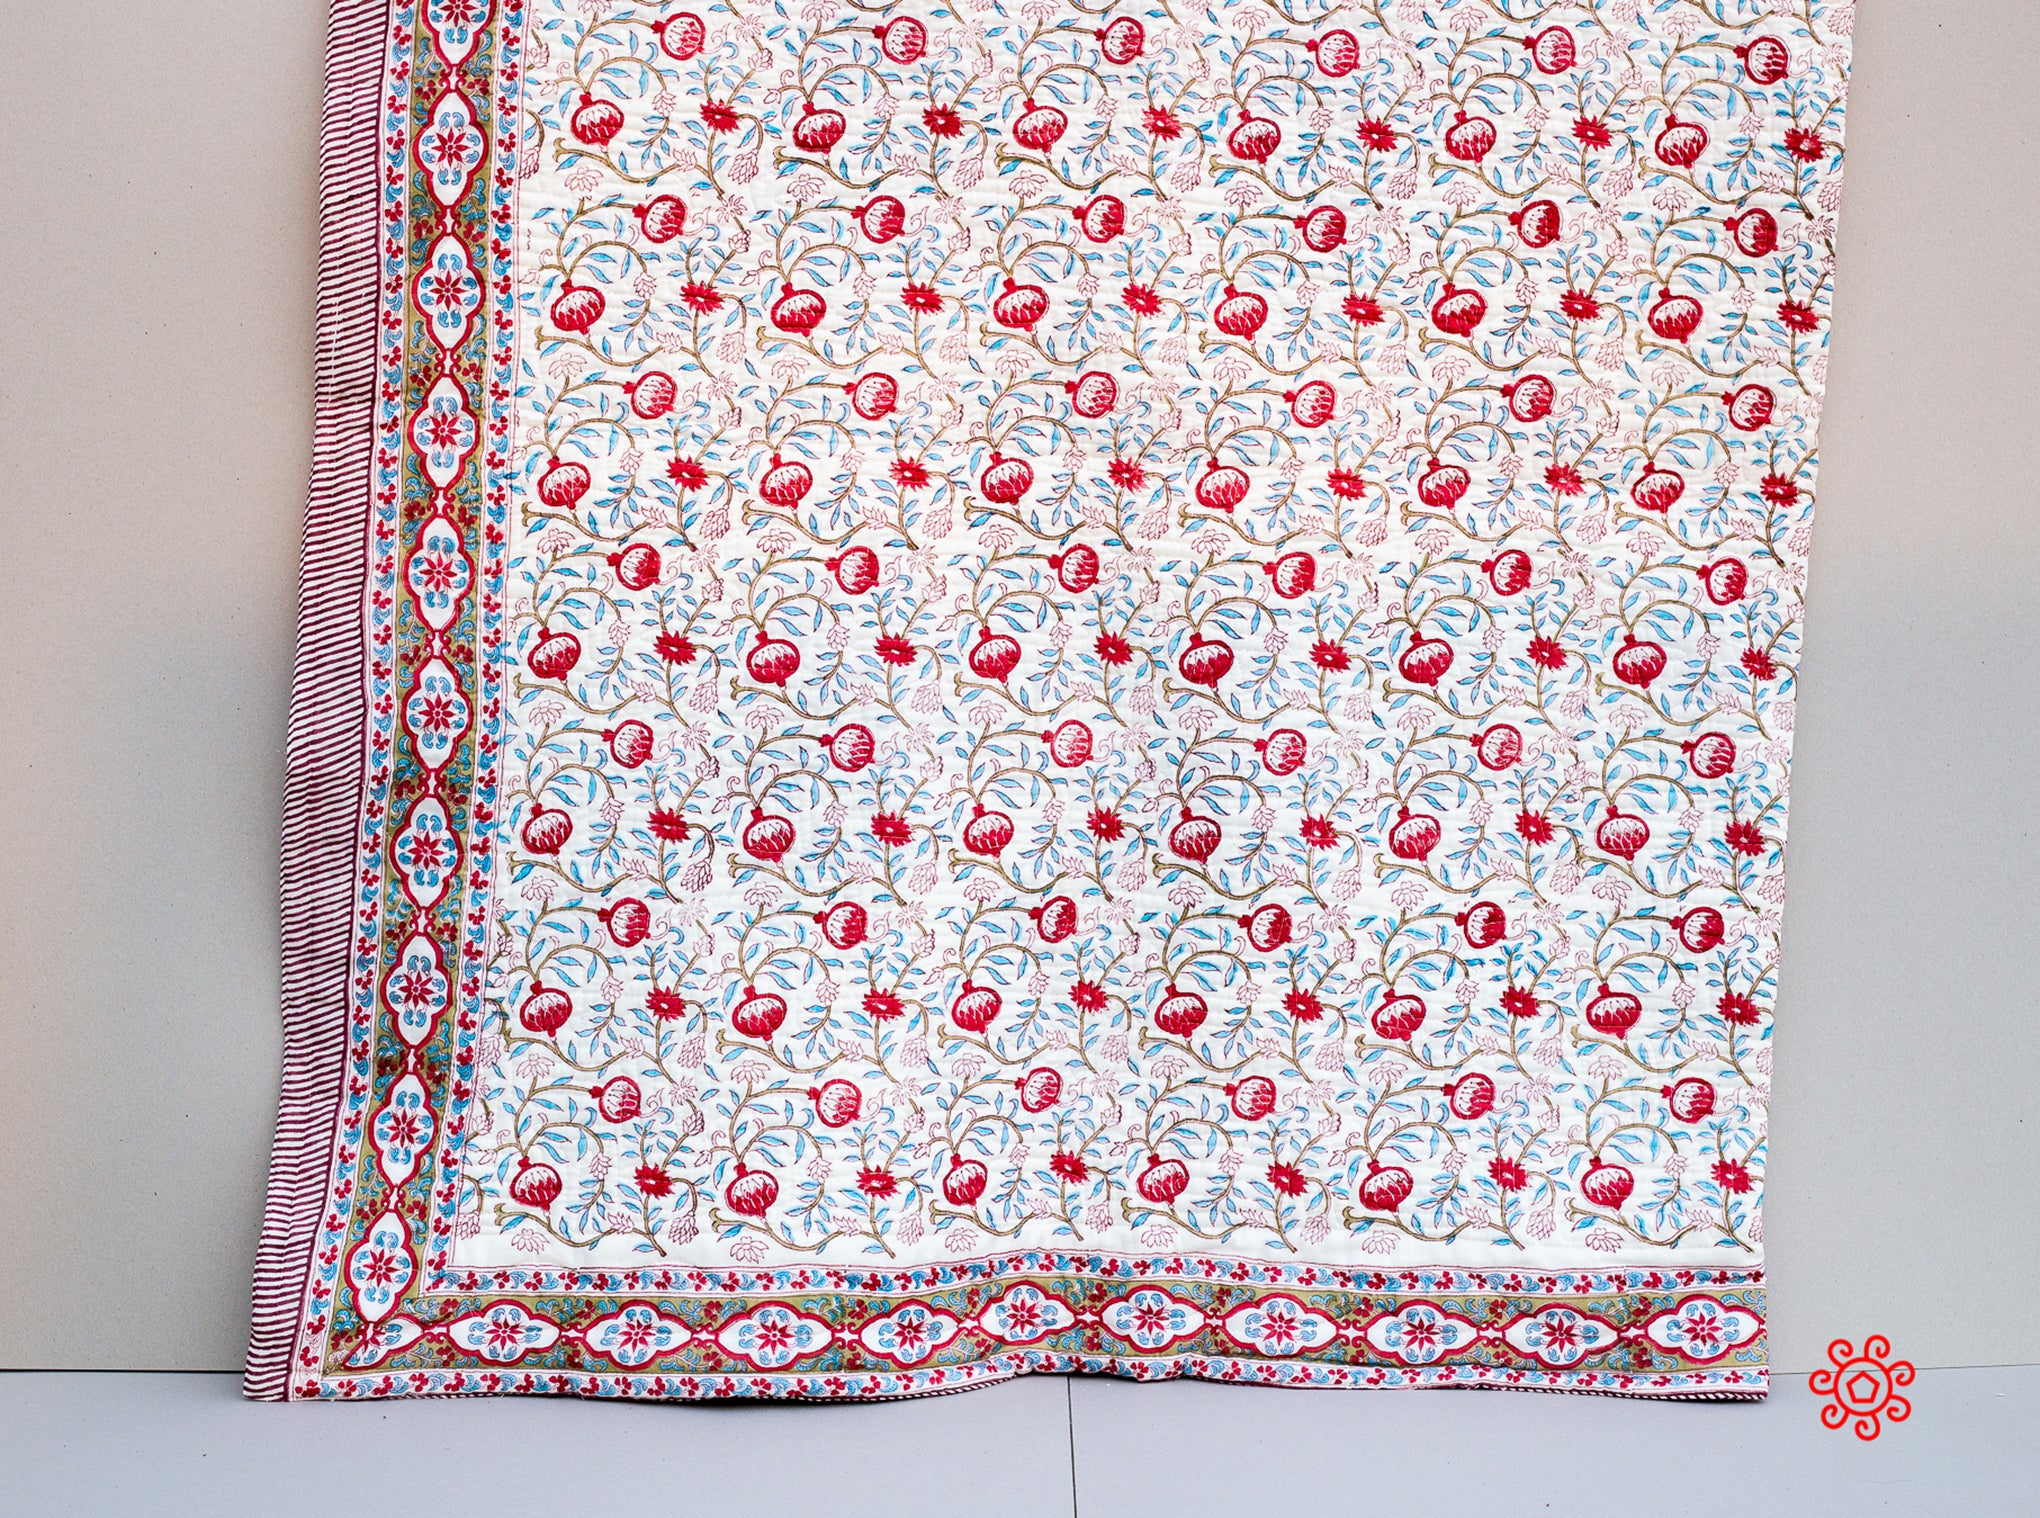 All Season Handmade Twin  Quilt, Jaipuri Block printed, Natural Cotton Queen Bedspread, 100% Cotton Throw, Quilted Bedcover, Room Decor Red